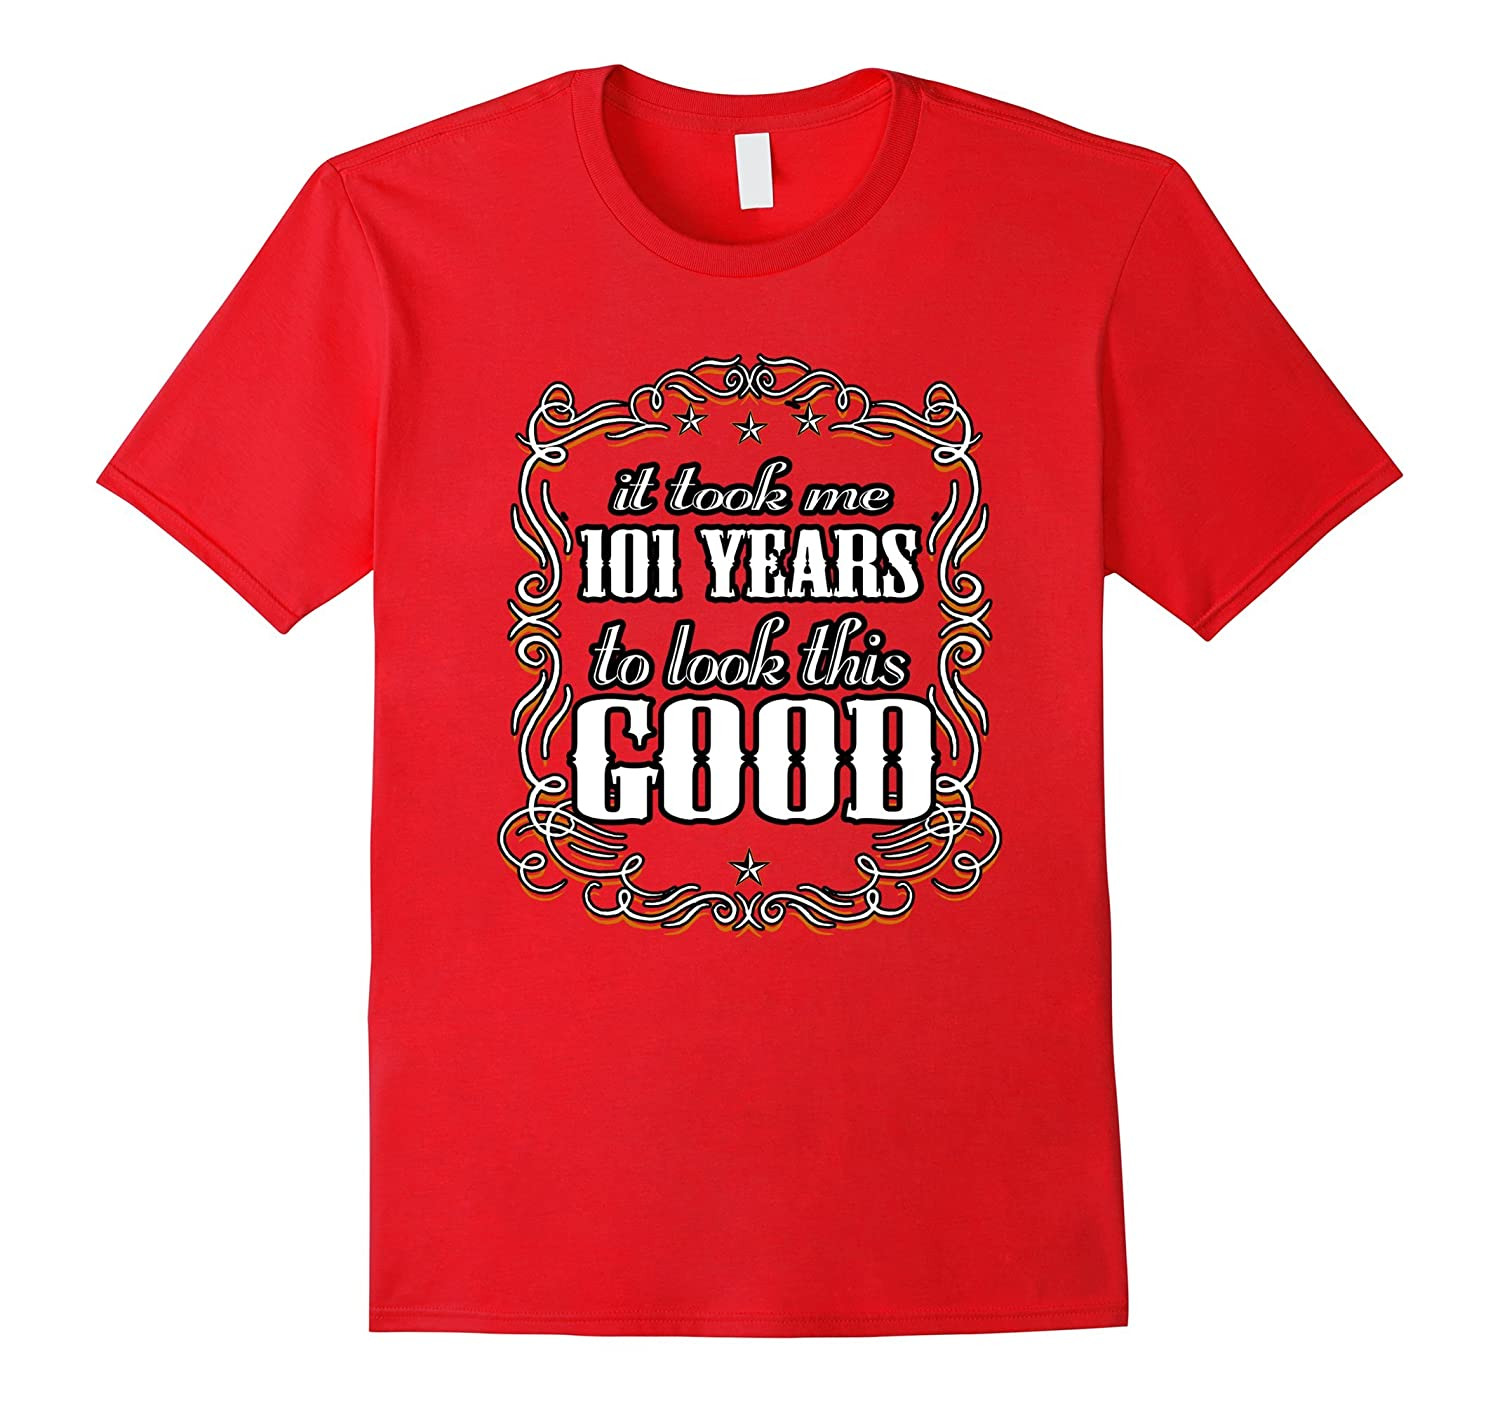 101st Birthday Shirt - Took Me 101 Years To Look This Good-TH